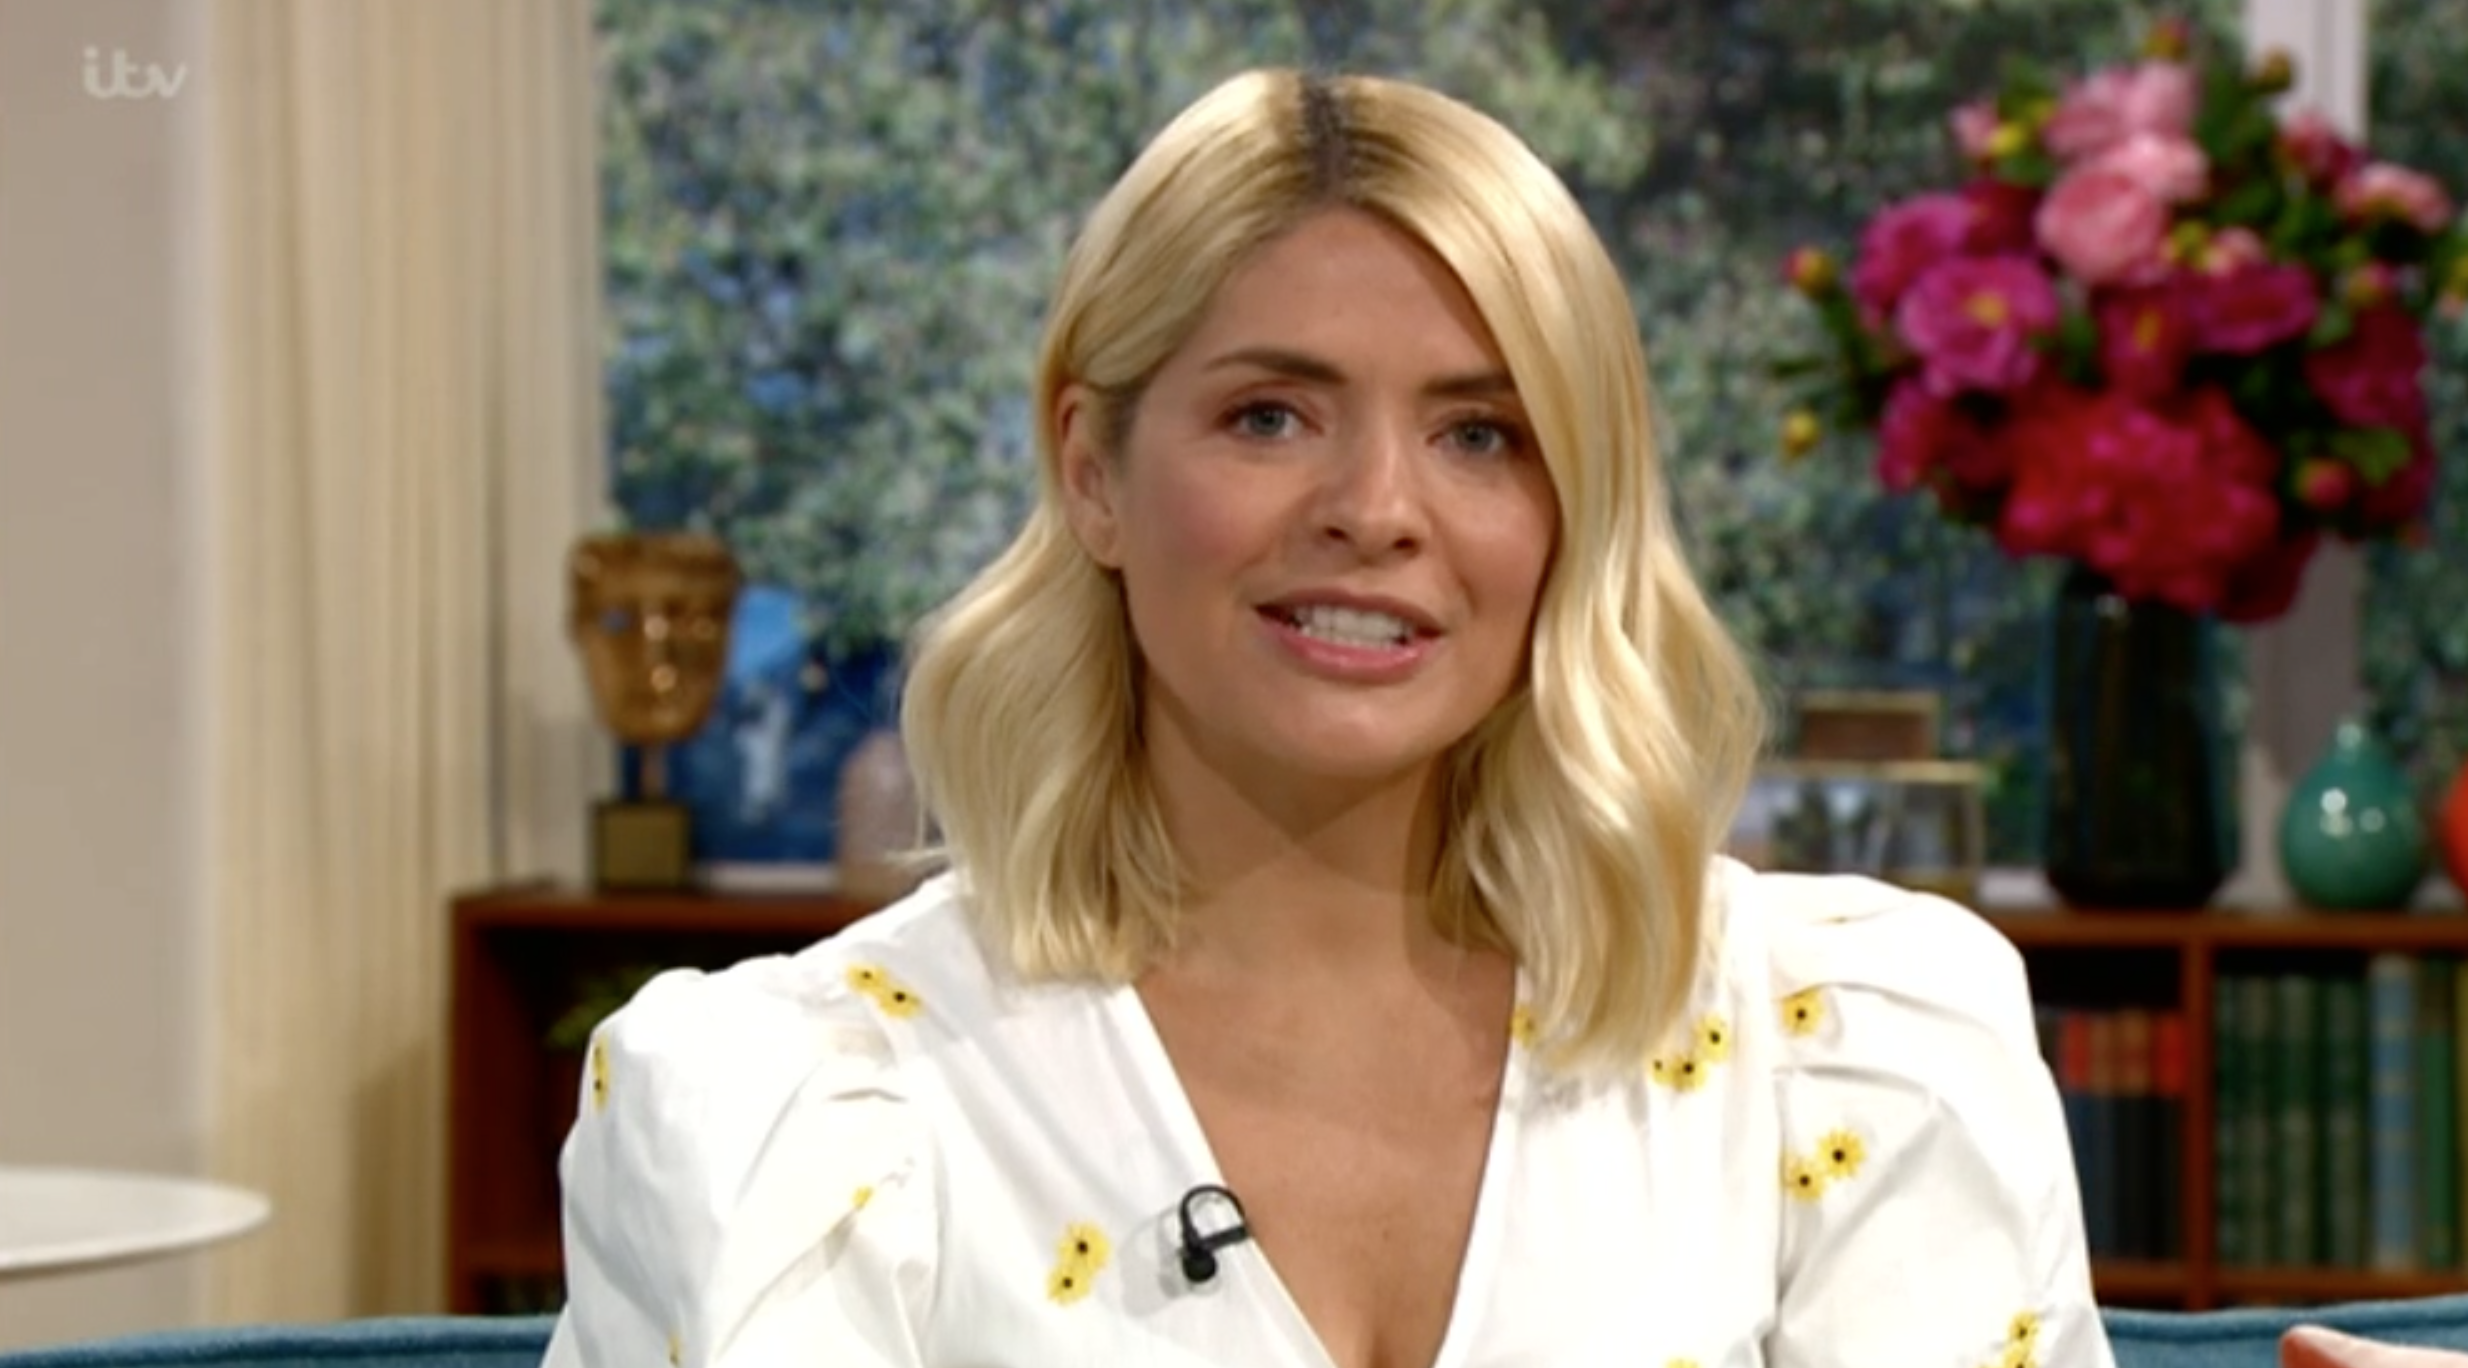 This Morning viewers ask why Holly Willoughby has gone to work dressed 'as a meringue'